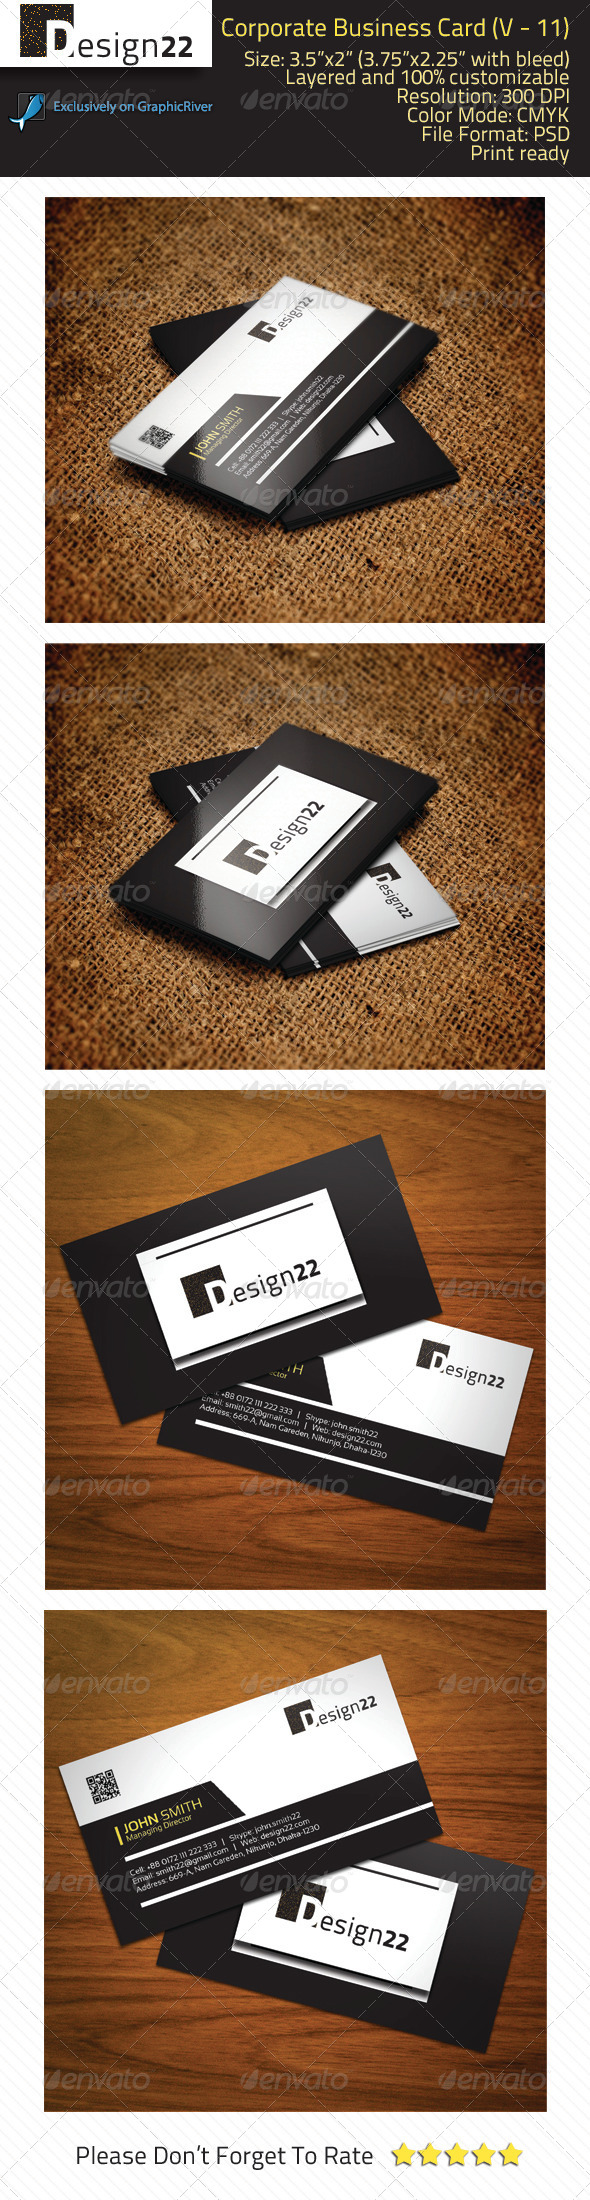 GraphicRiver Corporate Business Card V-11 7260076